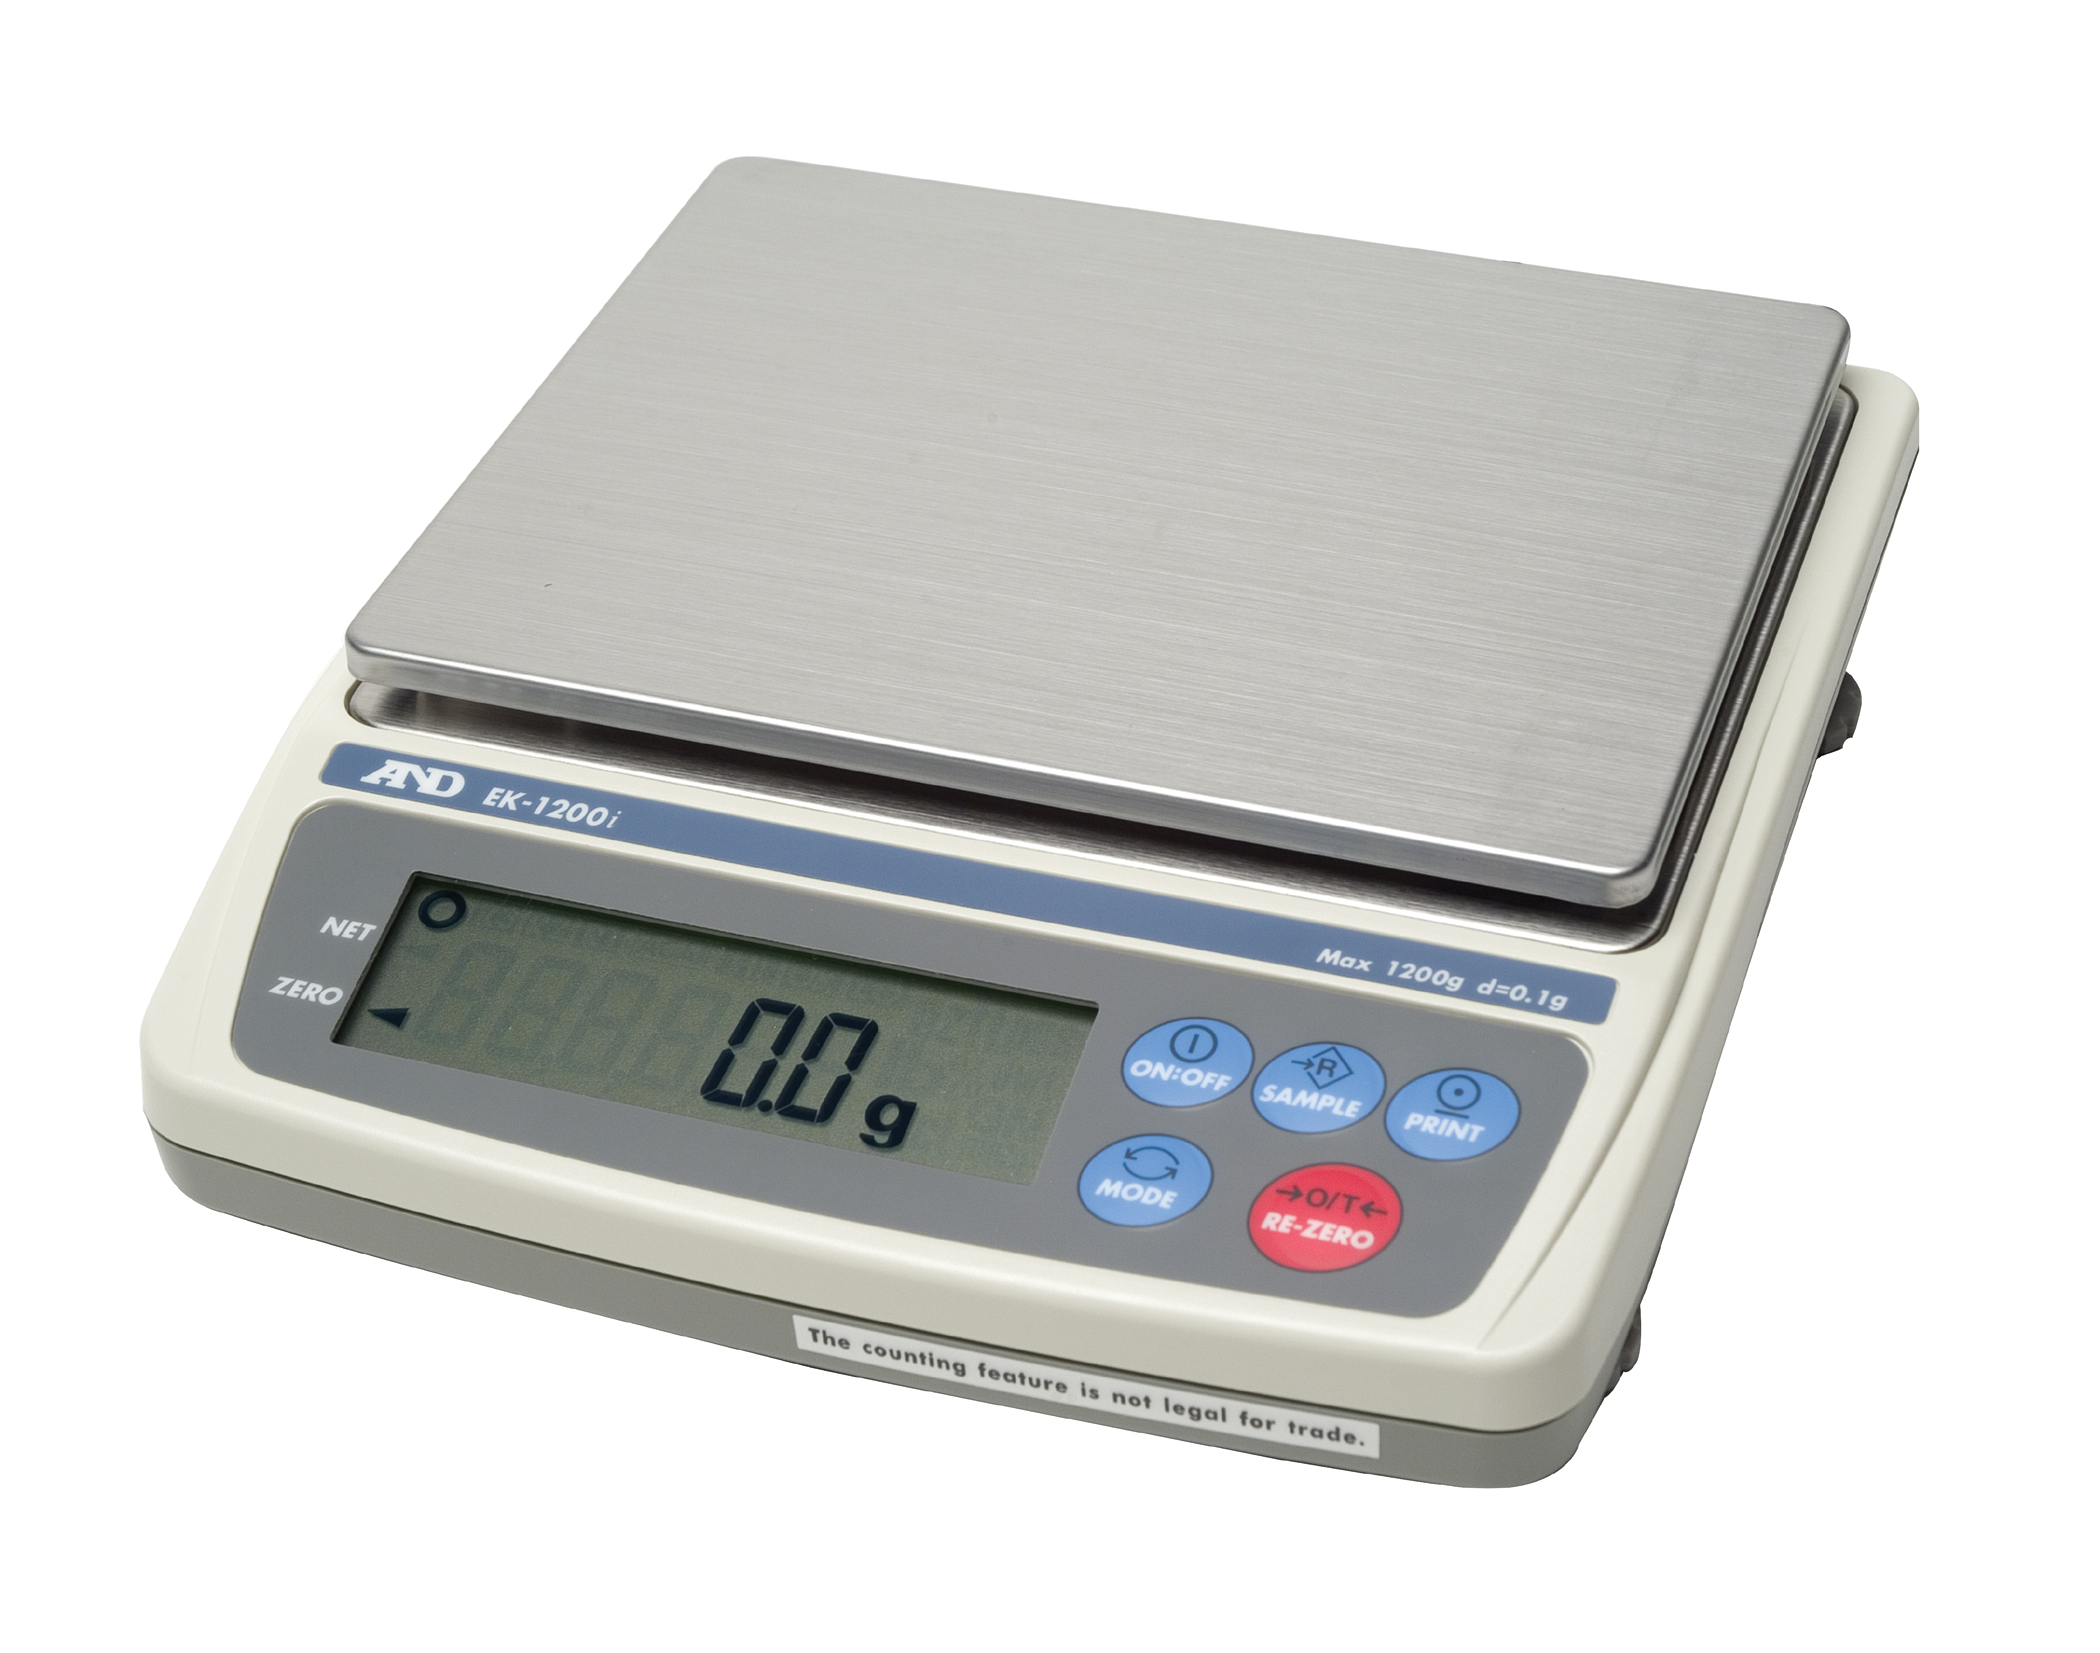 Abacus Scales Amp Systems And Everest Compact Balances